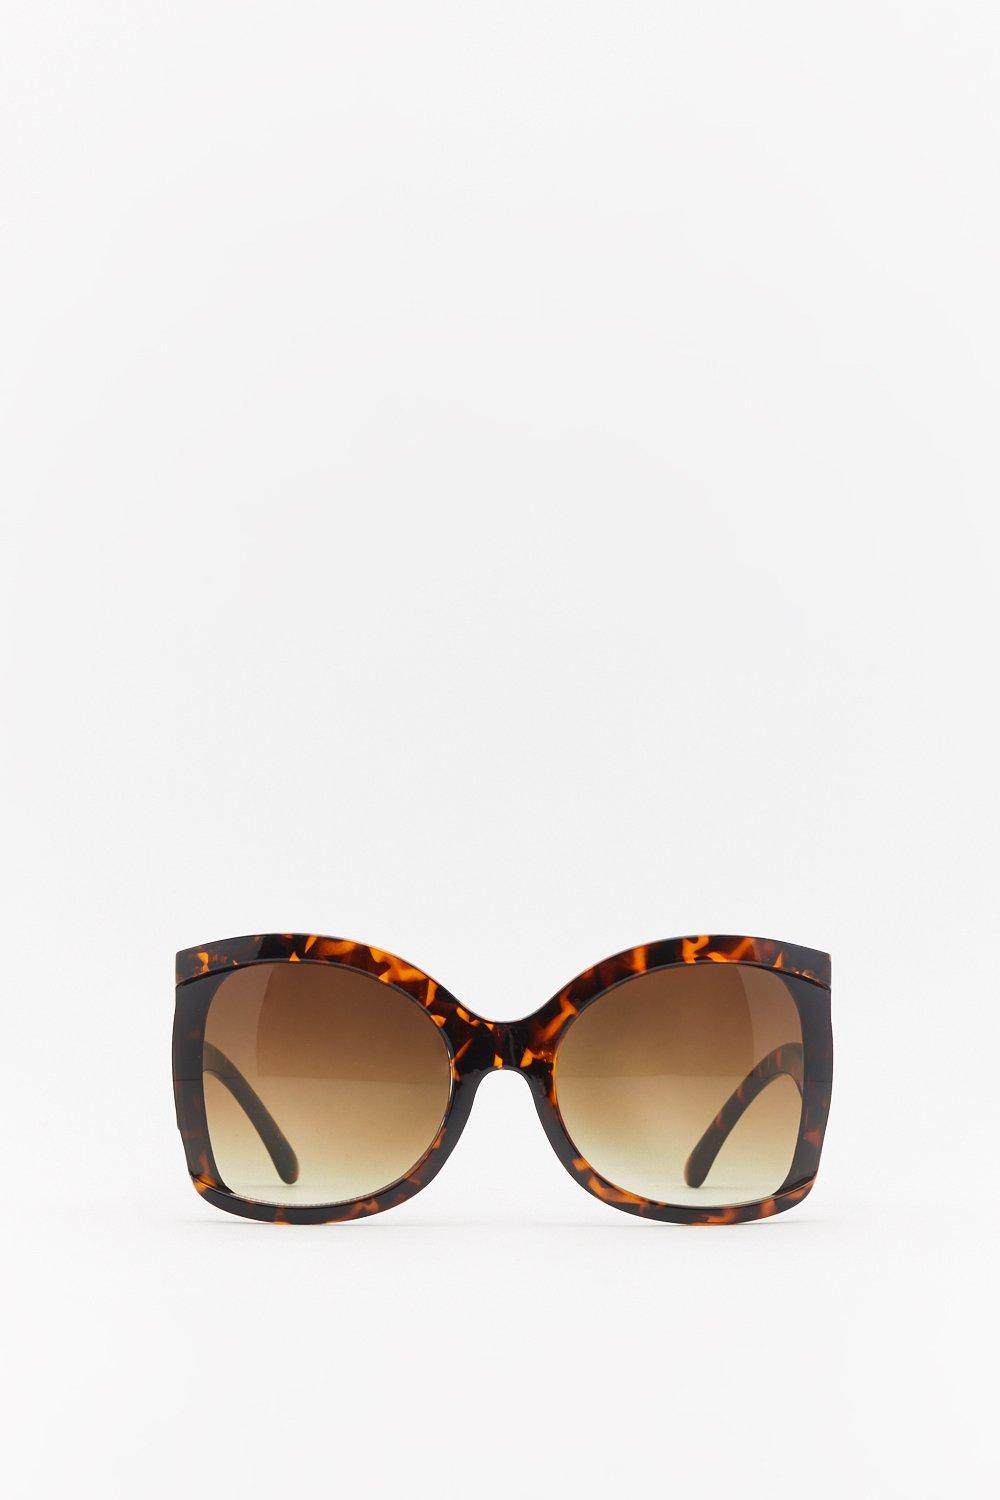 128e6cd6525de Womens Brown Bend the Rules Oversized Tortoiseshell Sunglasses. Hover to  zoom